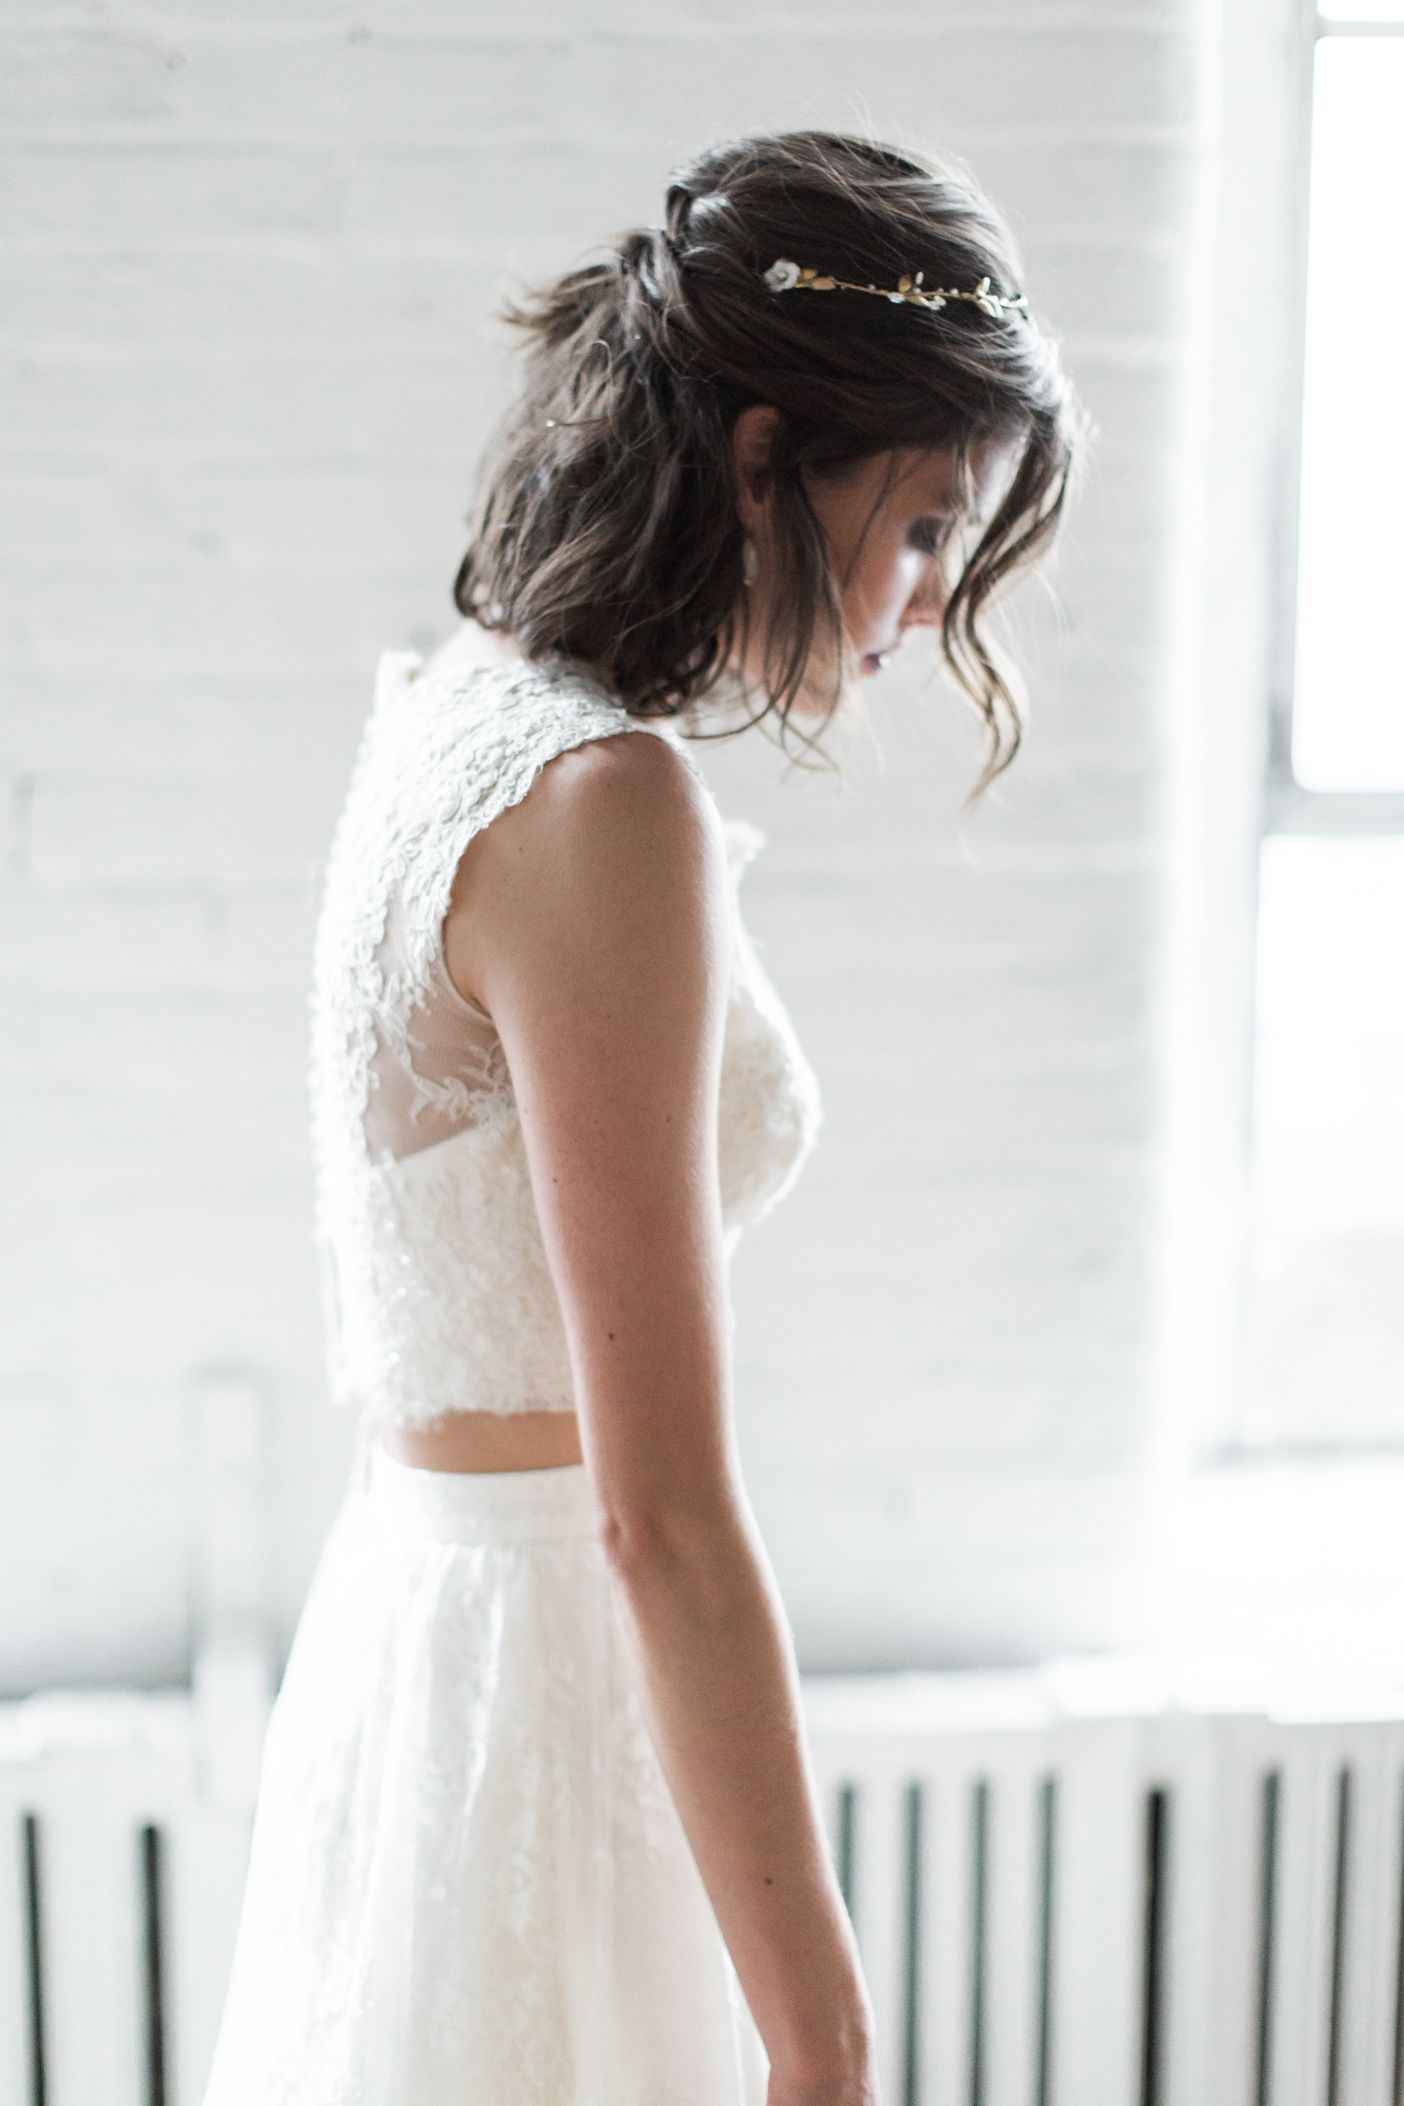 Bridal Separates To Mix And Match Your Personalized Look Bhldn Short Wedding Hair Vintage Wedding Hair Prom Hairstyles For Short Hair [ 2106 x 1404 Pixel ]